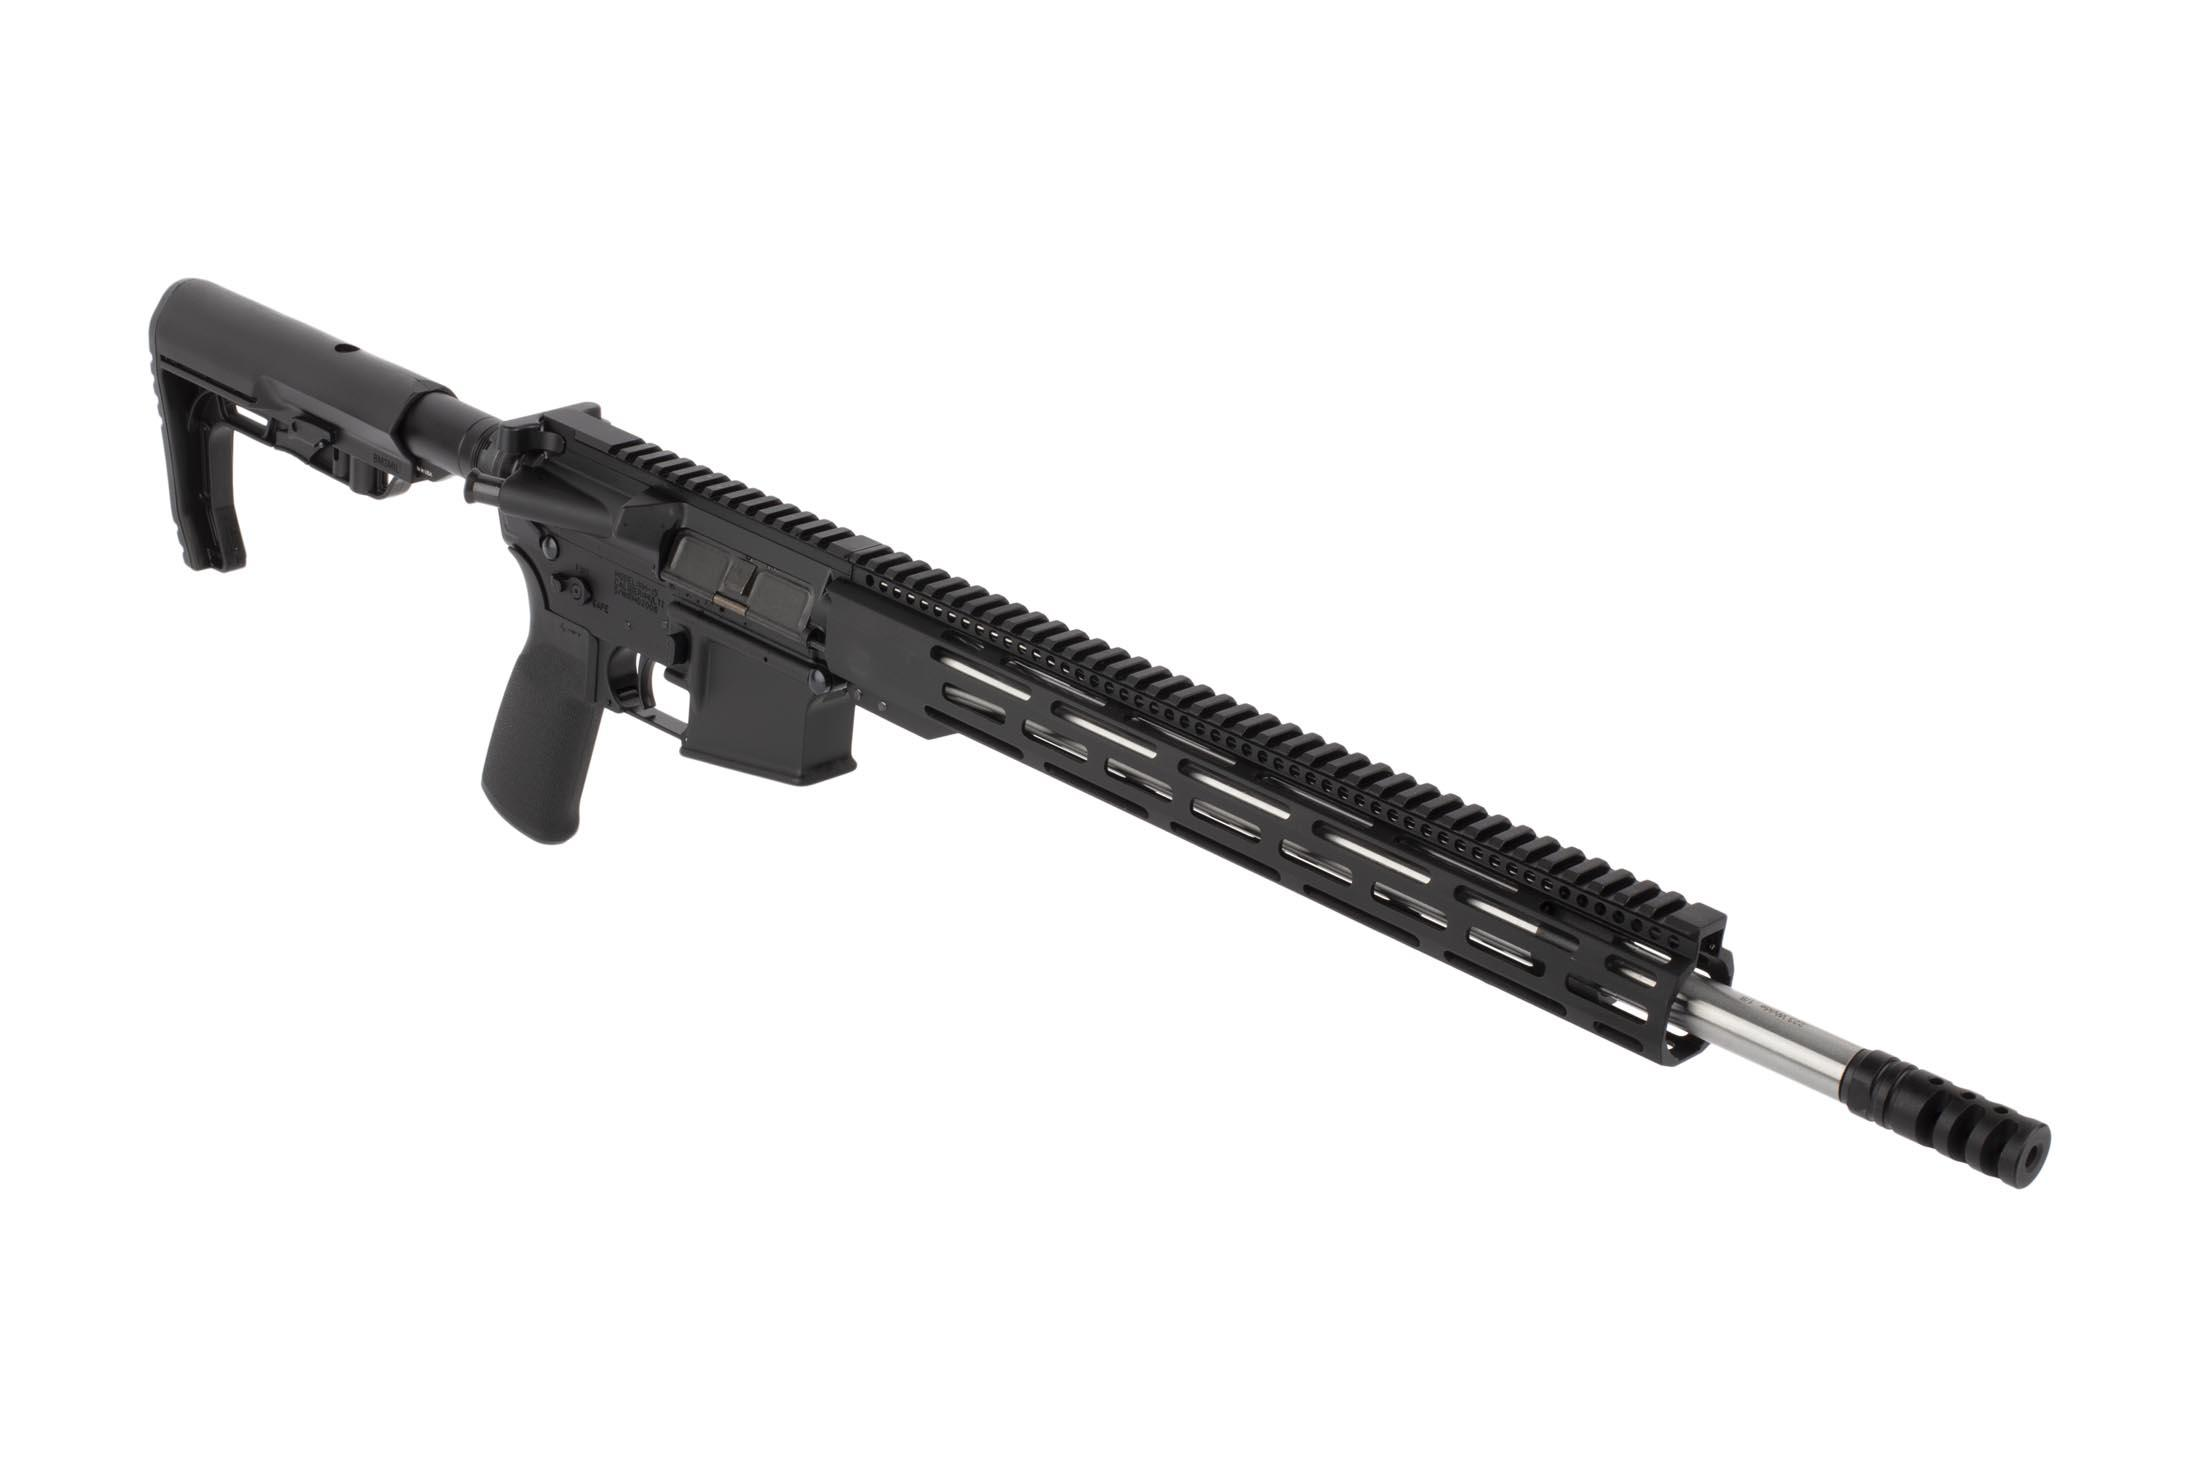 Radical Firearms 18in .223 Wylde AR-15 features a lightweight M-LOK handguard and effective A2 flash hider